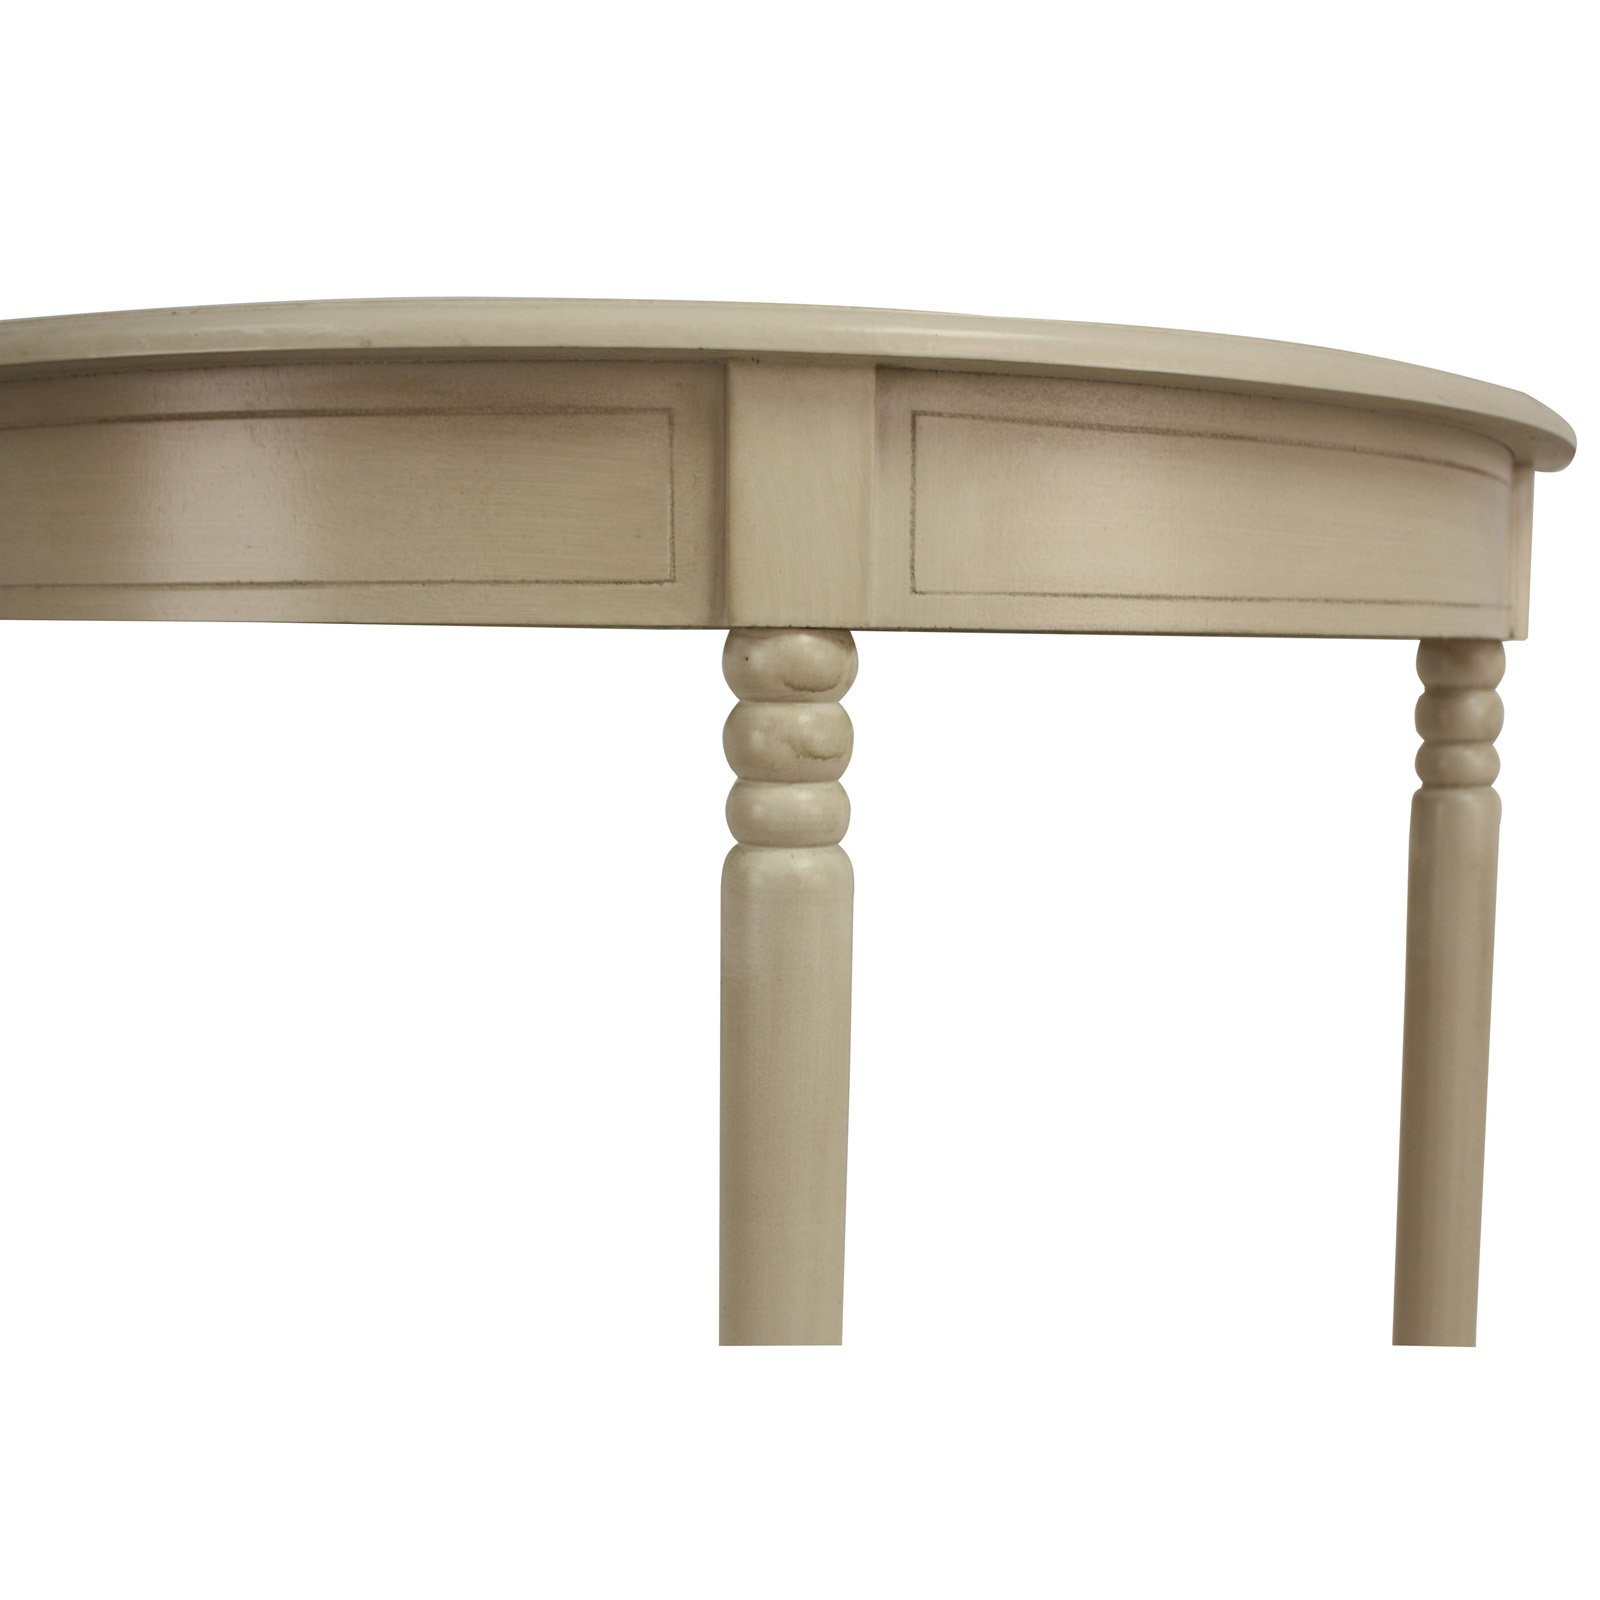 details about decor therapy antique white simplicity half round accent table detail circle beech bedside reclining chair pottery barn couch outdoor lamps small metal legs arc